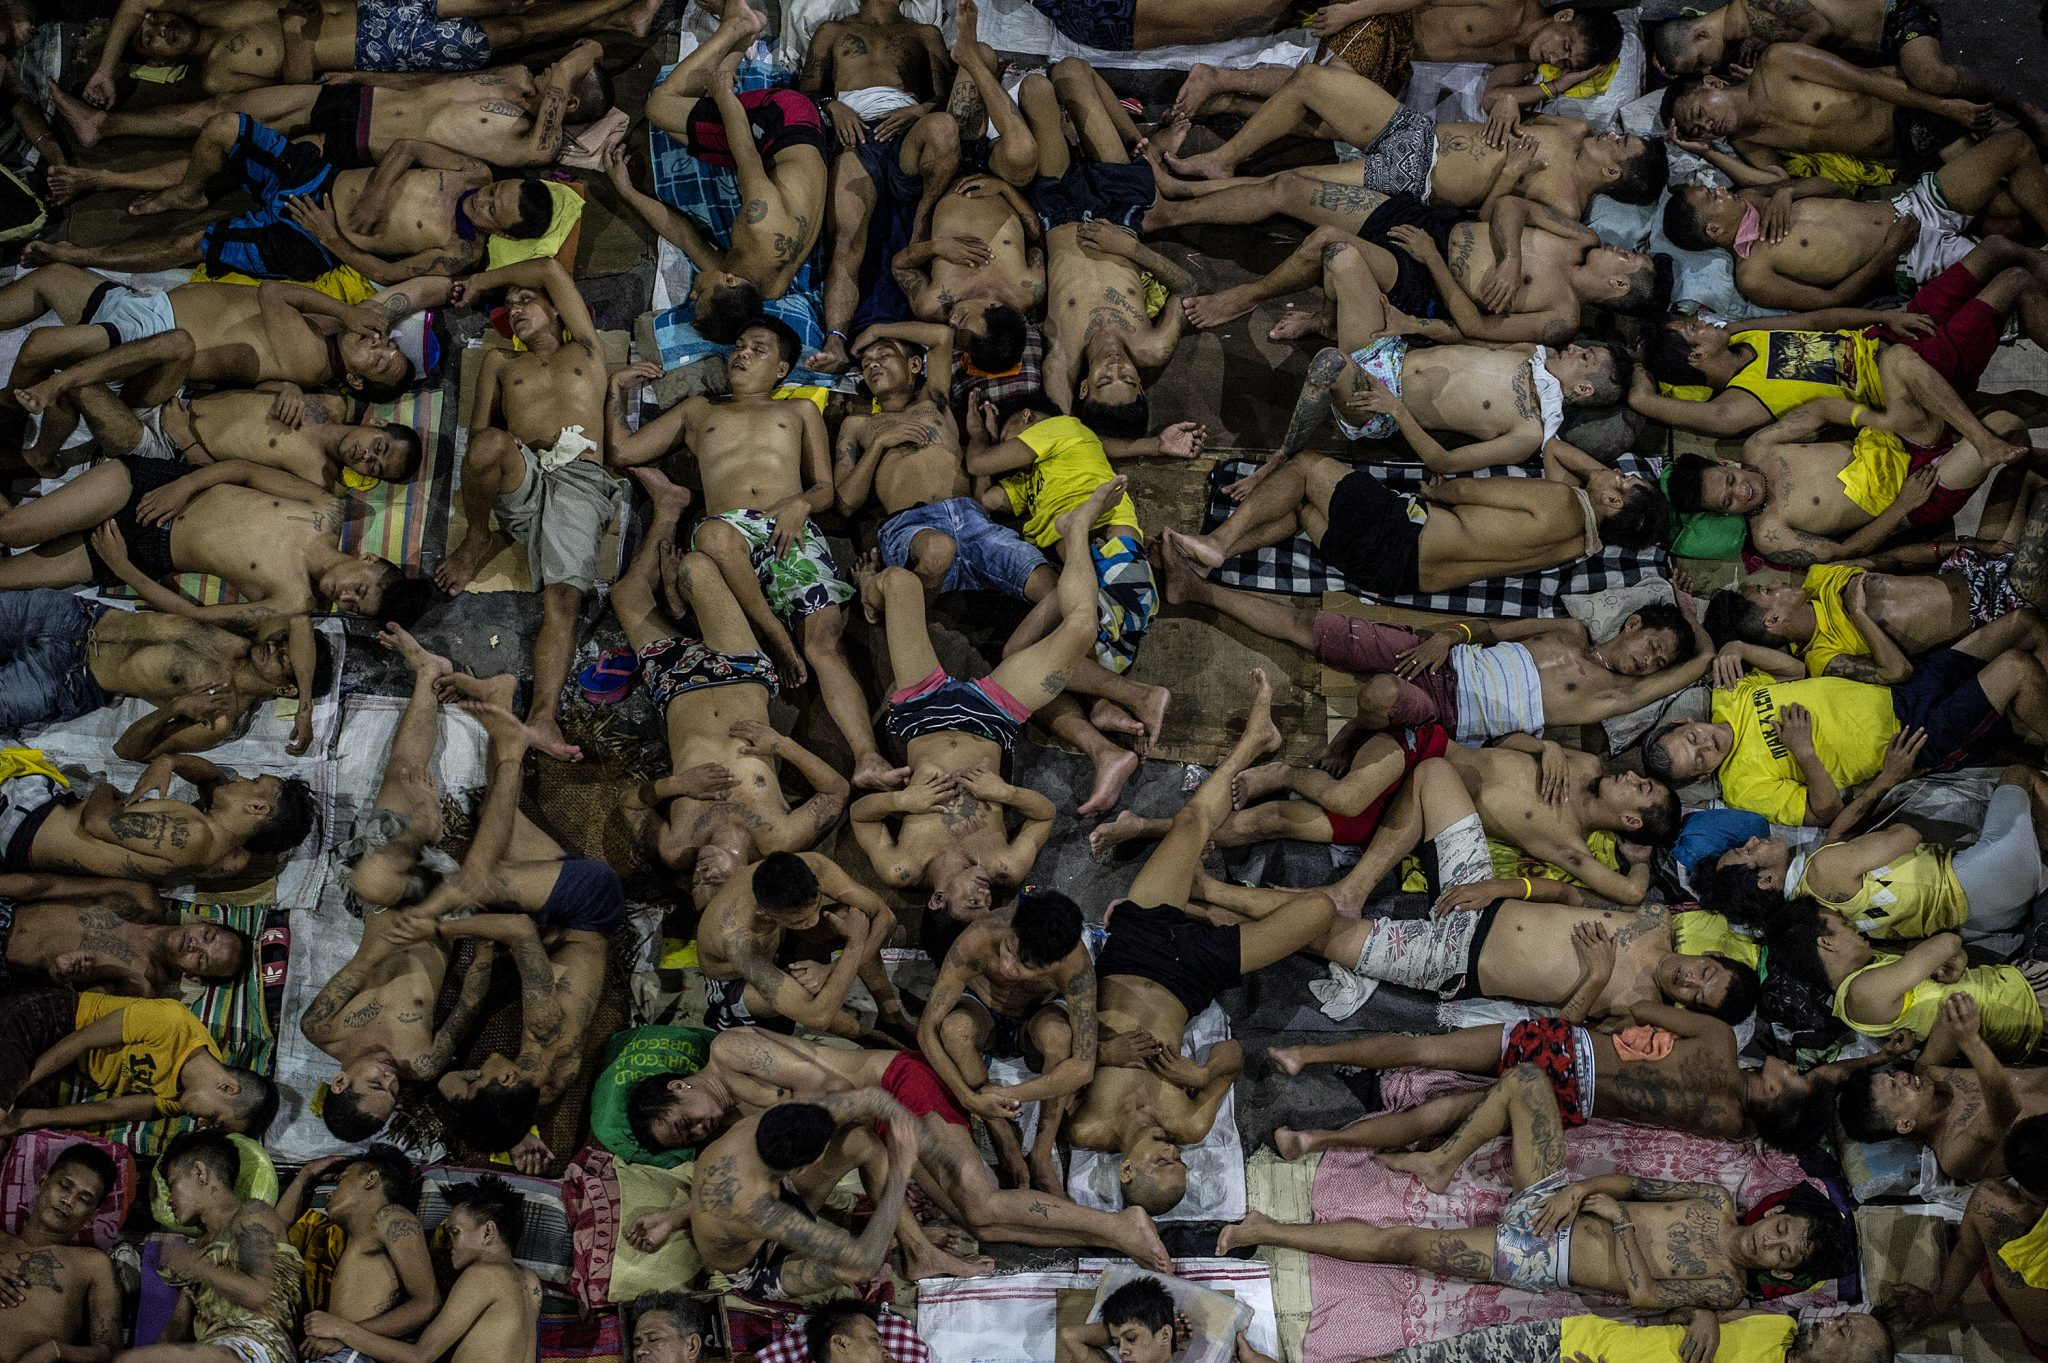 Last year's winner of the Photography Feature was Agence France-Presse's Noel Celis for his pictures of Quezon City jail. Photo: Noel Celis/AFP